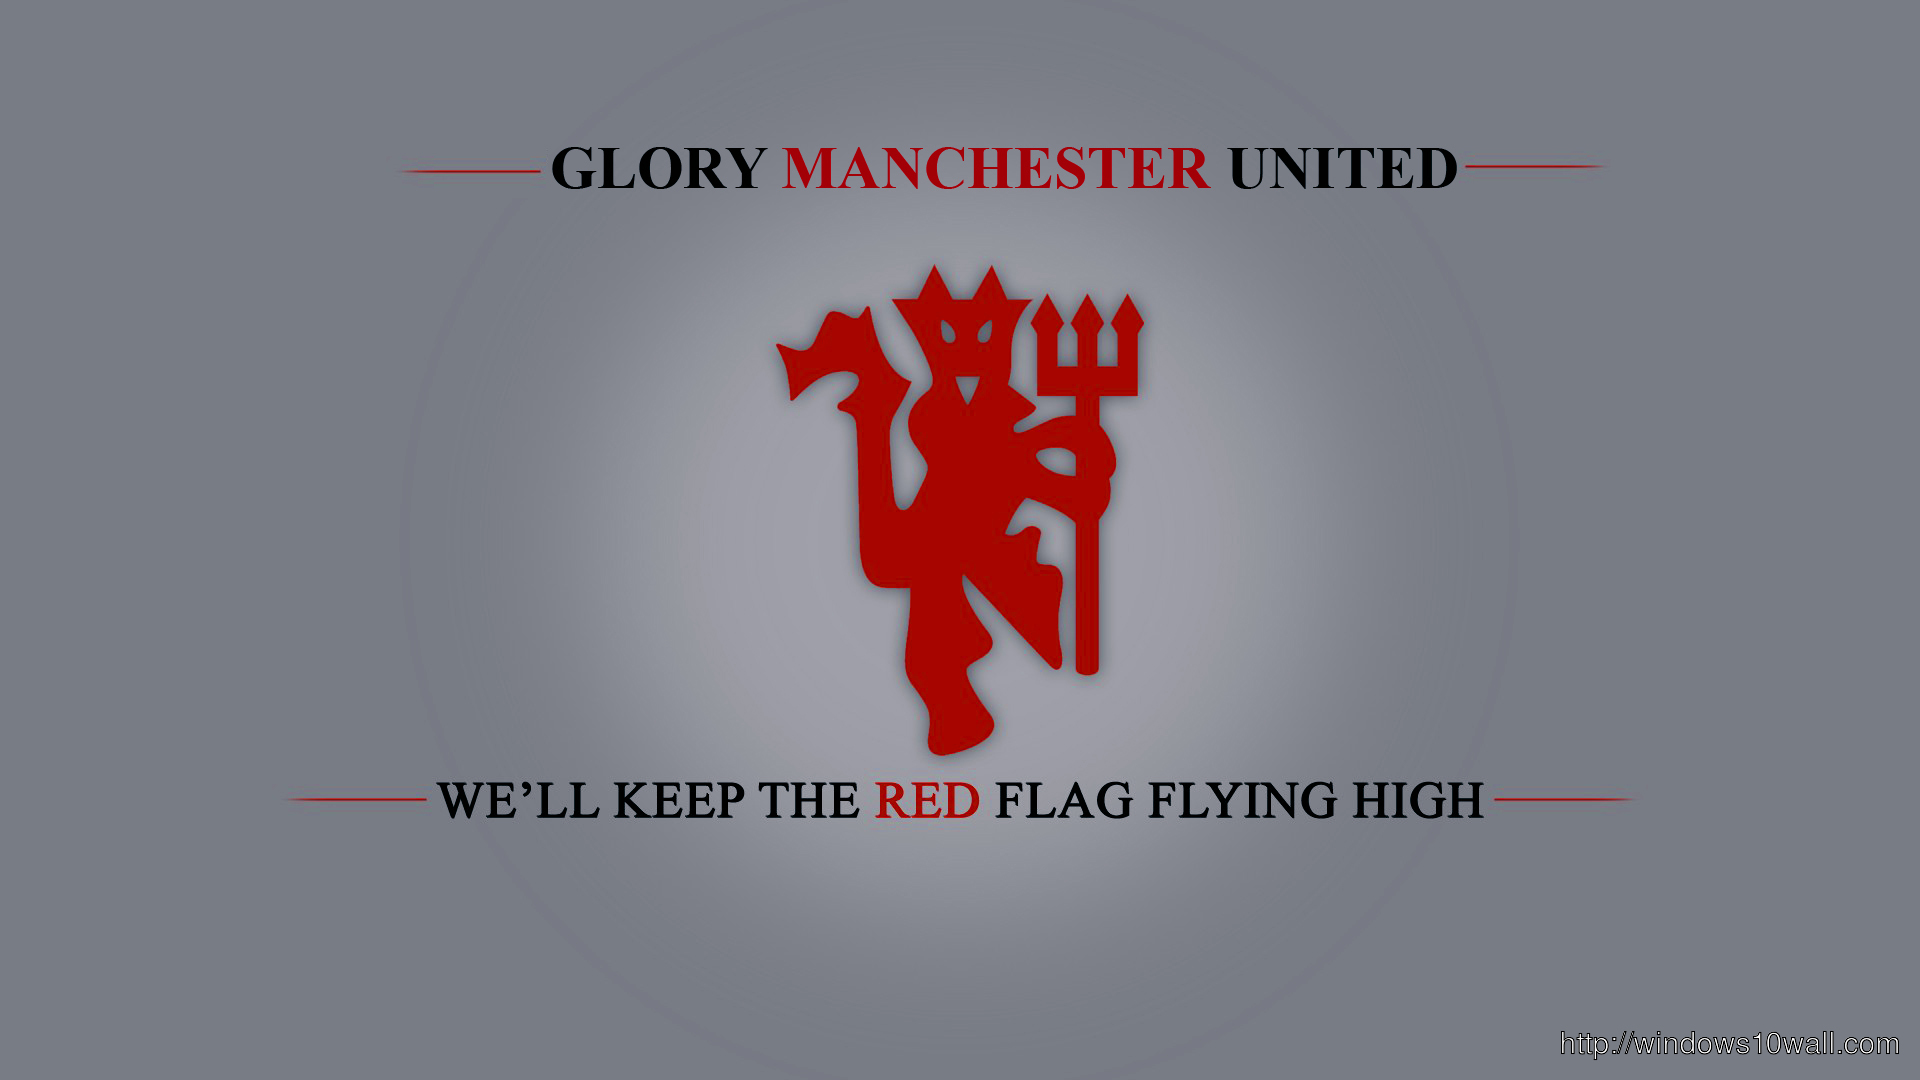 glory manchester united background wallpaper windows 10 man utd logo wallpaper man utd logo beads